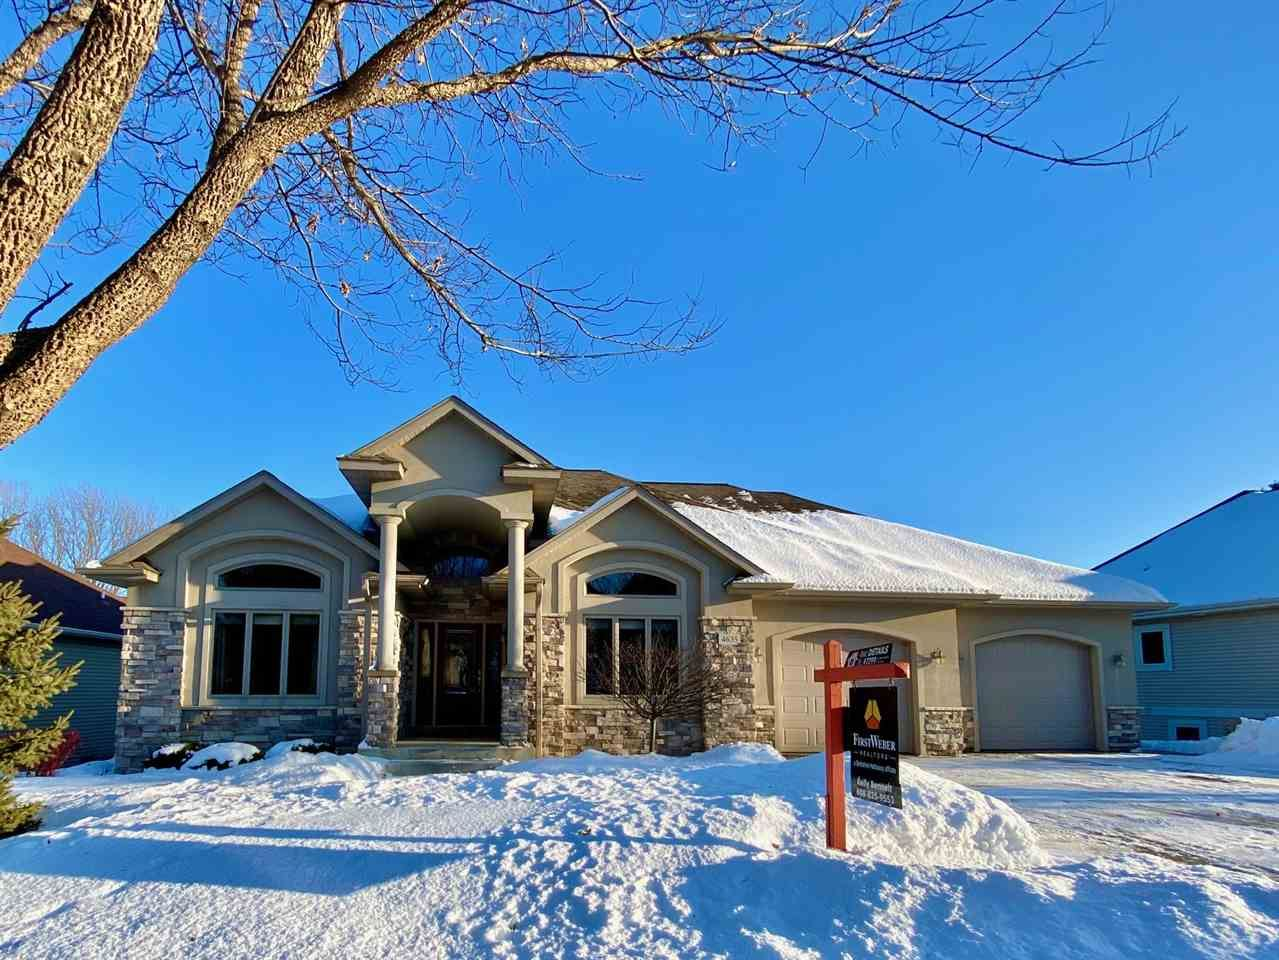 4635 Prairie Fire Ct, Windsor, WI 53532 - MLS#: 1876581